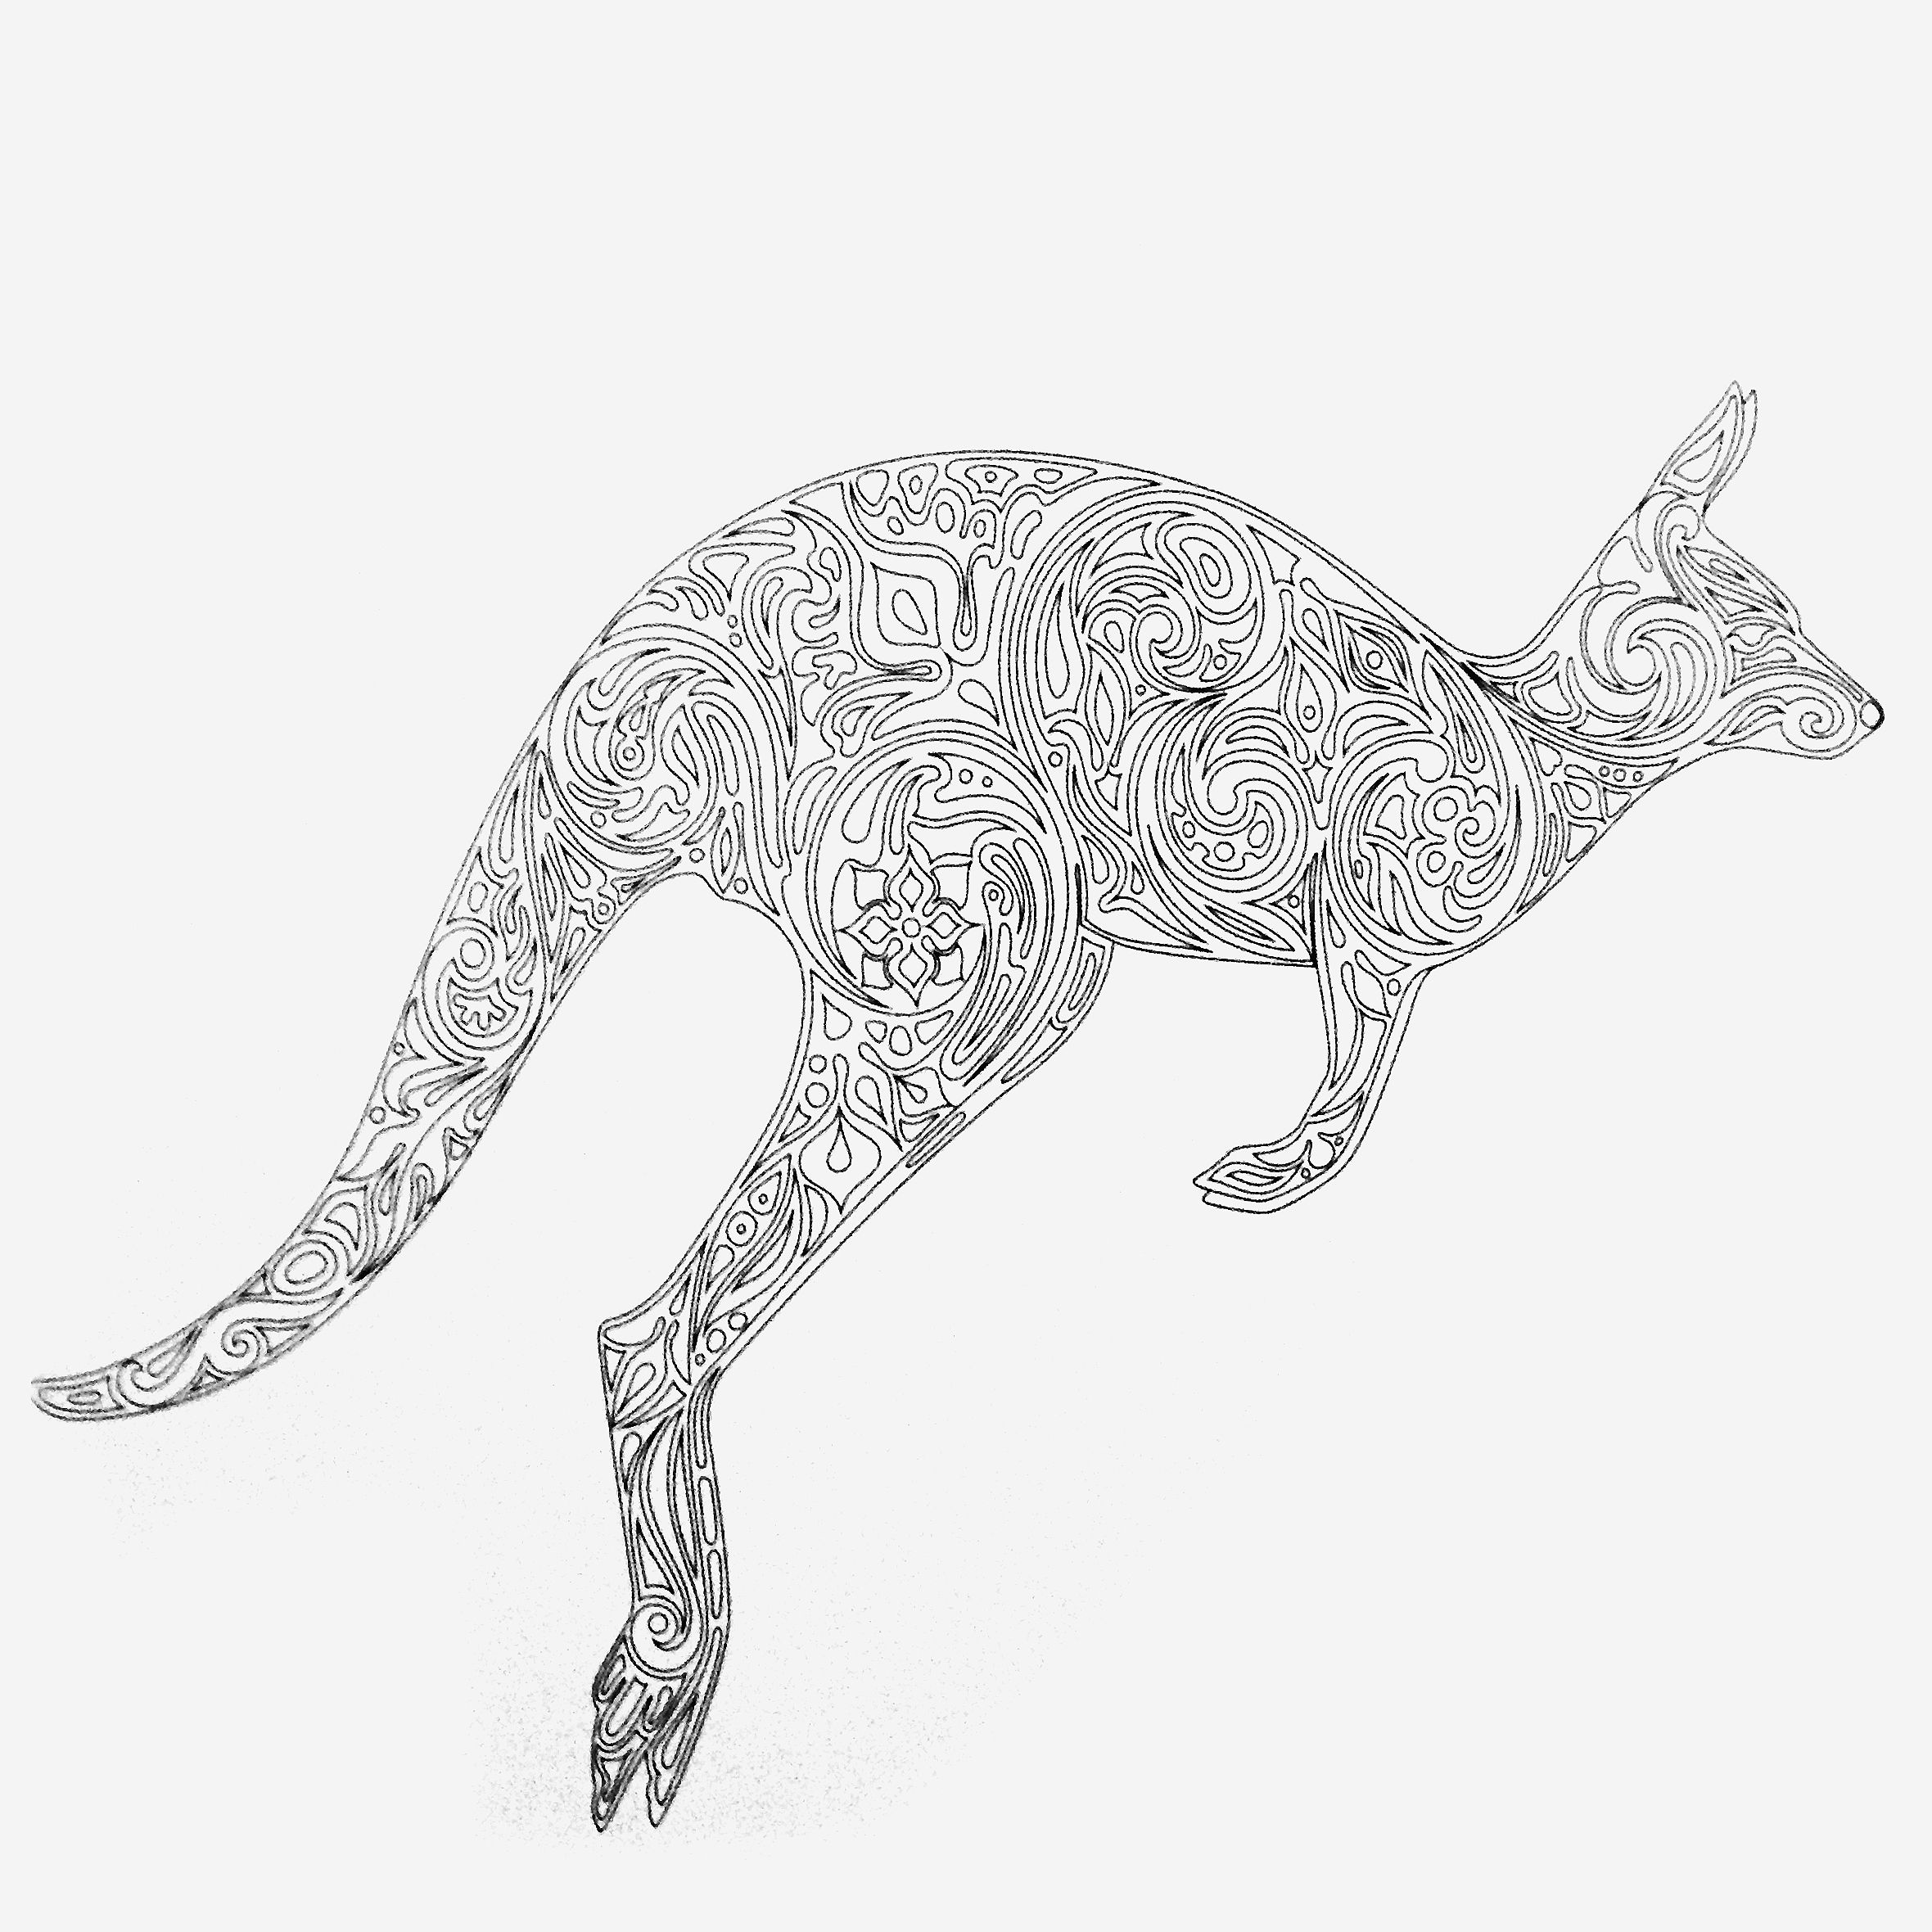 printable pictures of kangaroos colors of nature adult colouring book kangaroo cool pictures of kangaroos printable